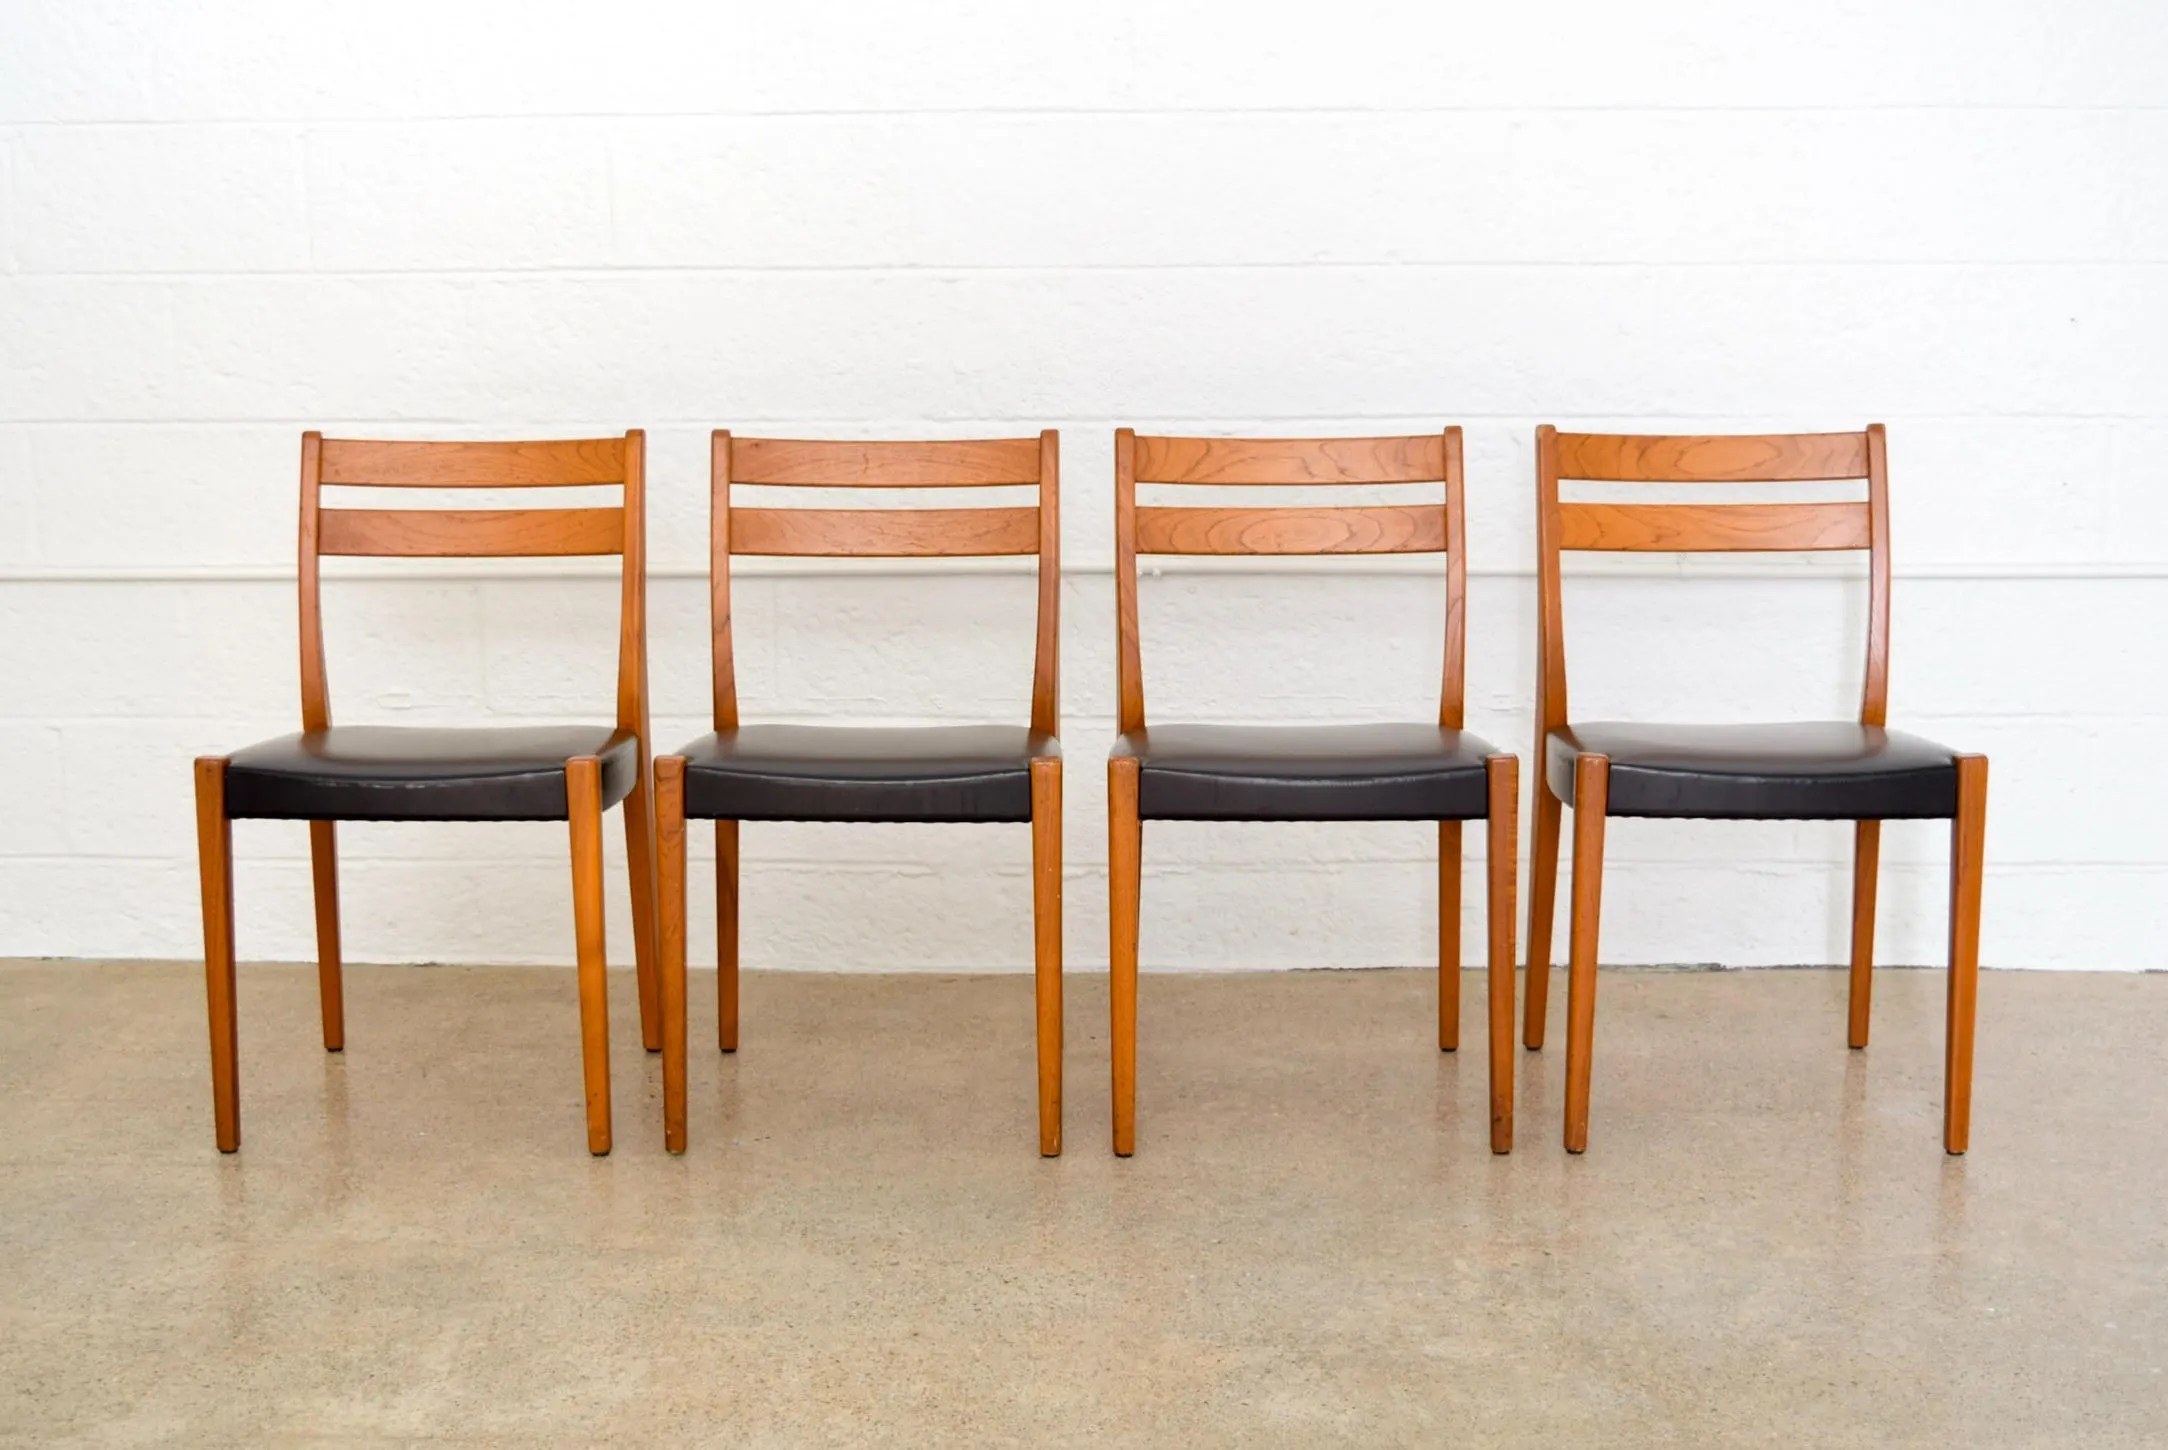 Swedish Mid Century Furniture Mid Century Chairs Svegards Markaryd Teak Dining Chairs Made In Sweden Mid Century Scandinavian Modern Vintage Set Of 4